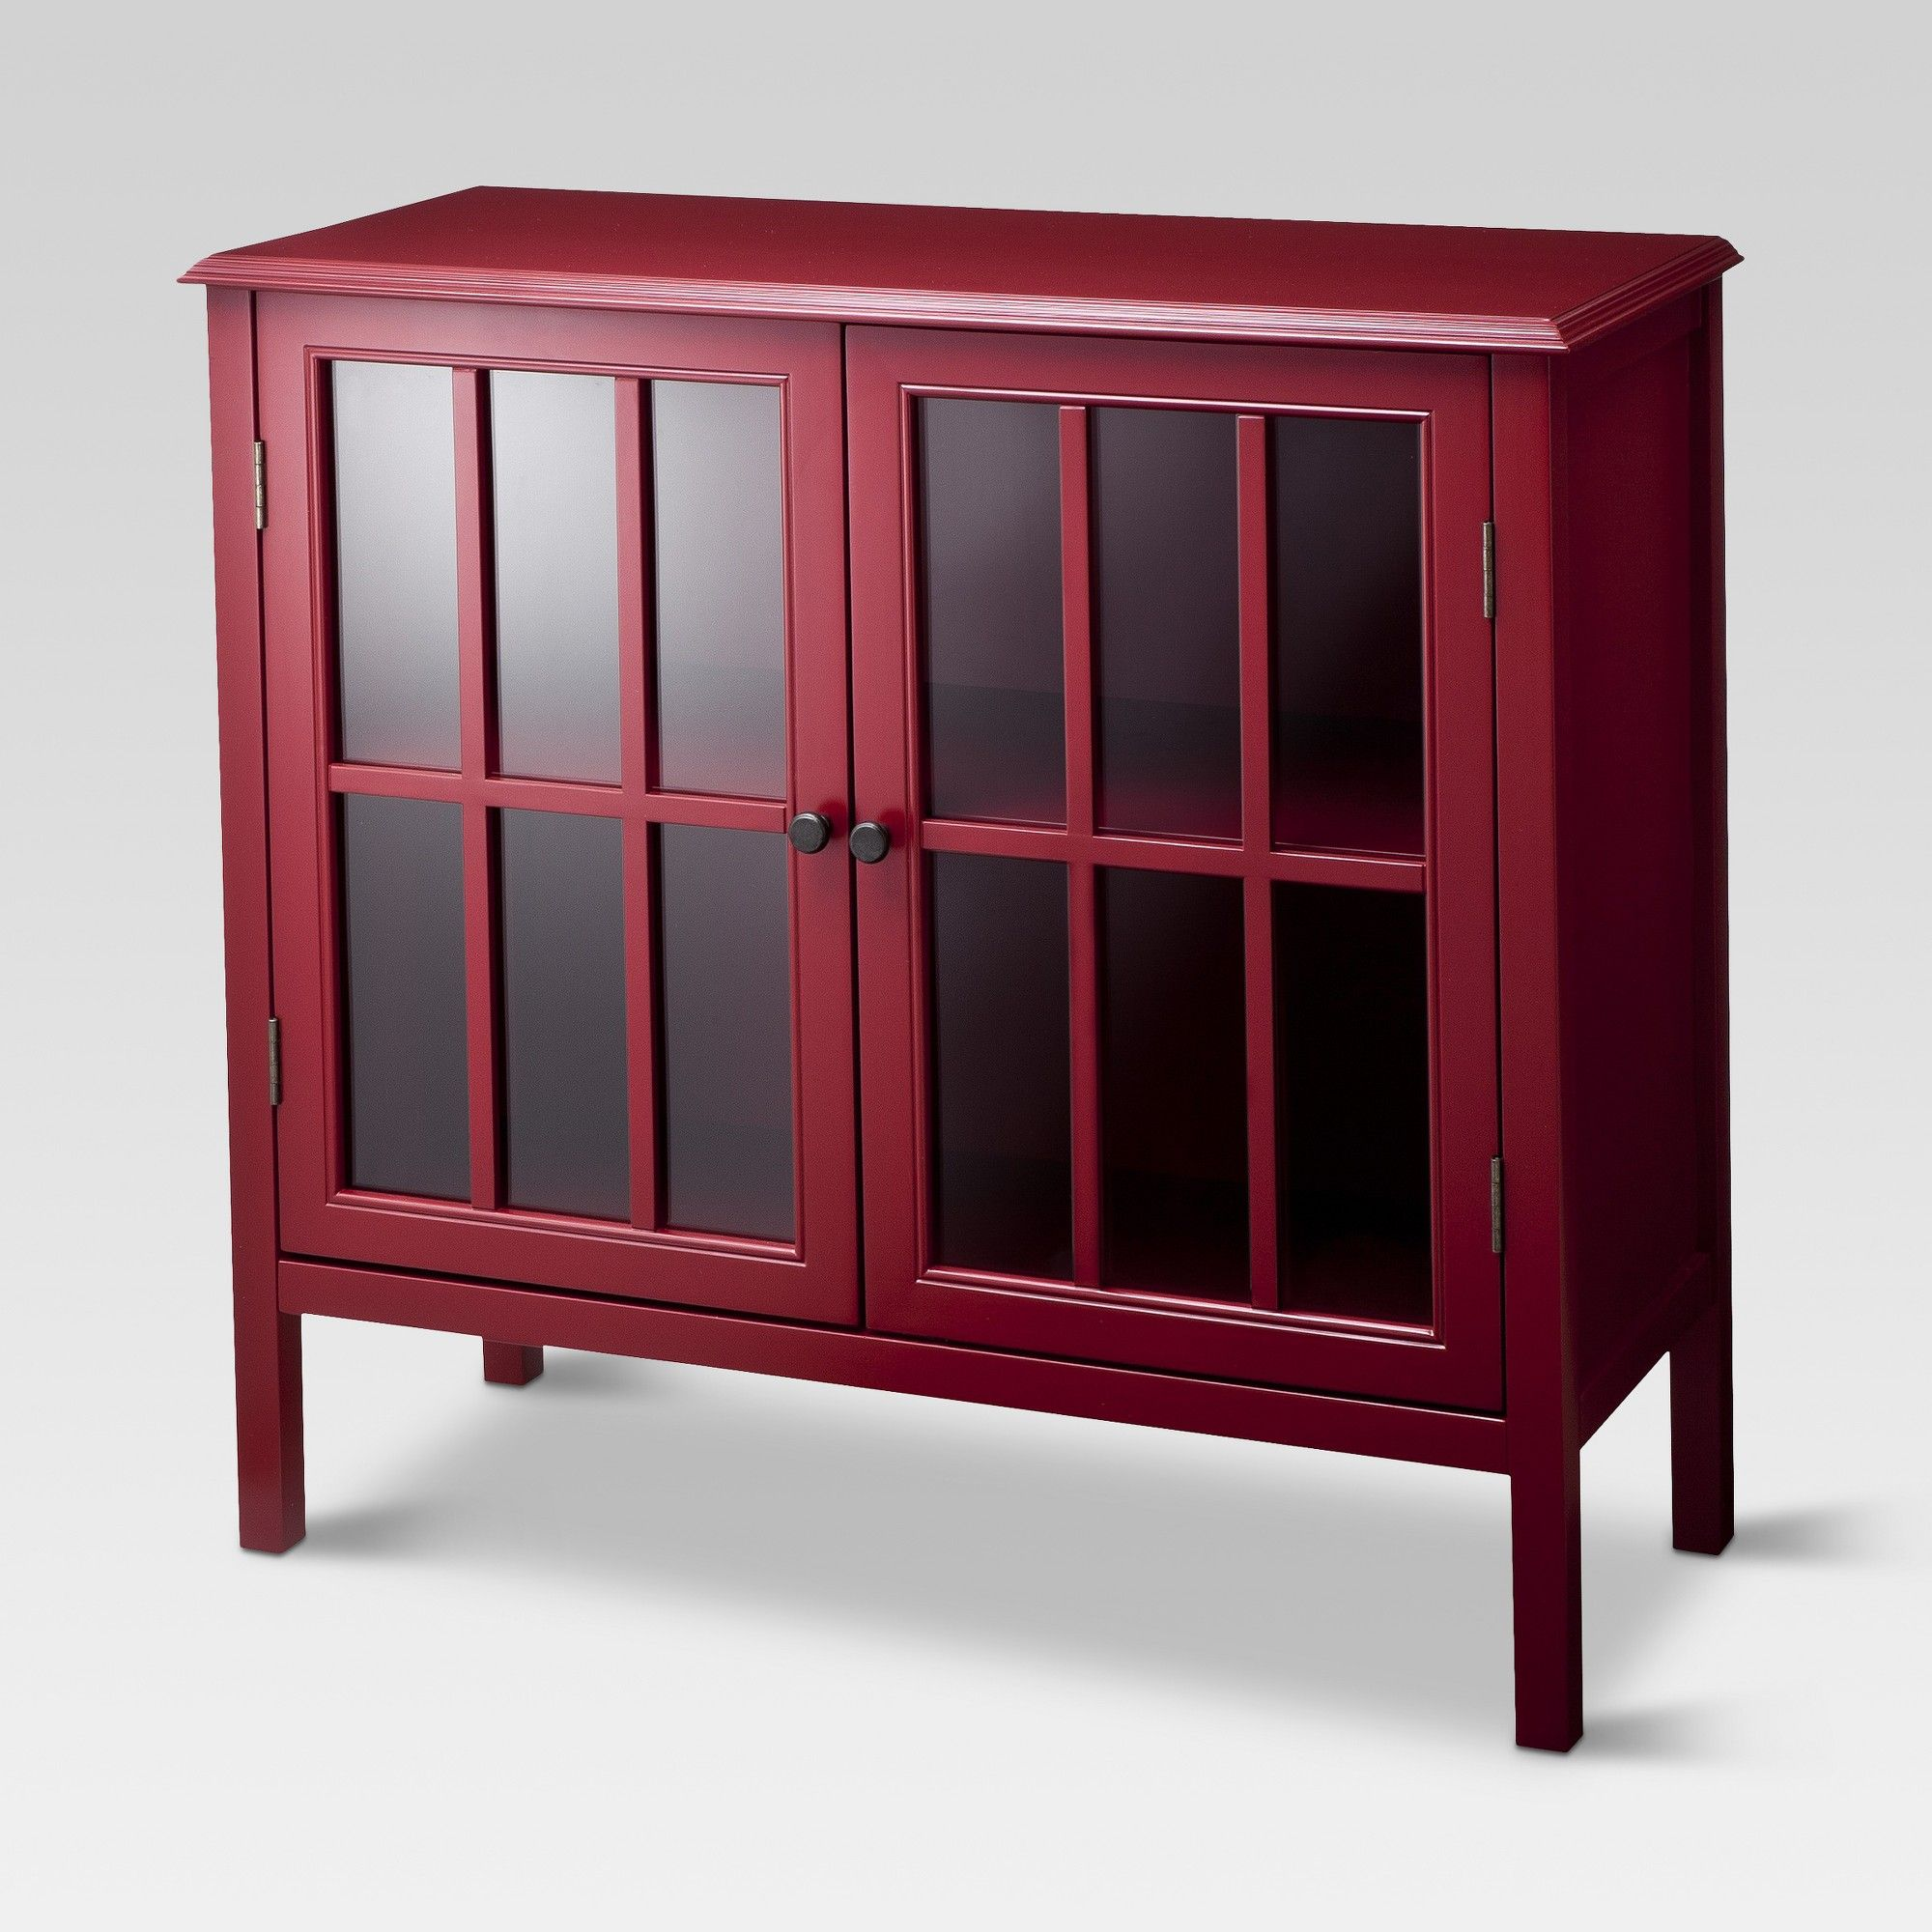 windham two door storage cabinet red threshold in 2019 products rh pinterest com